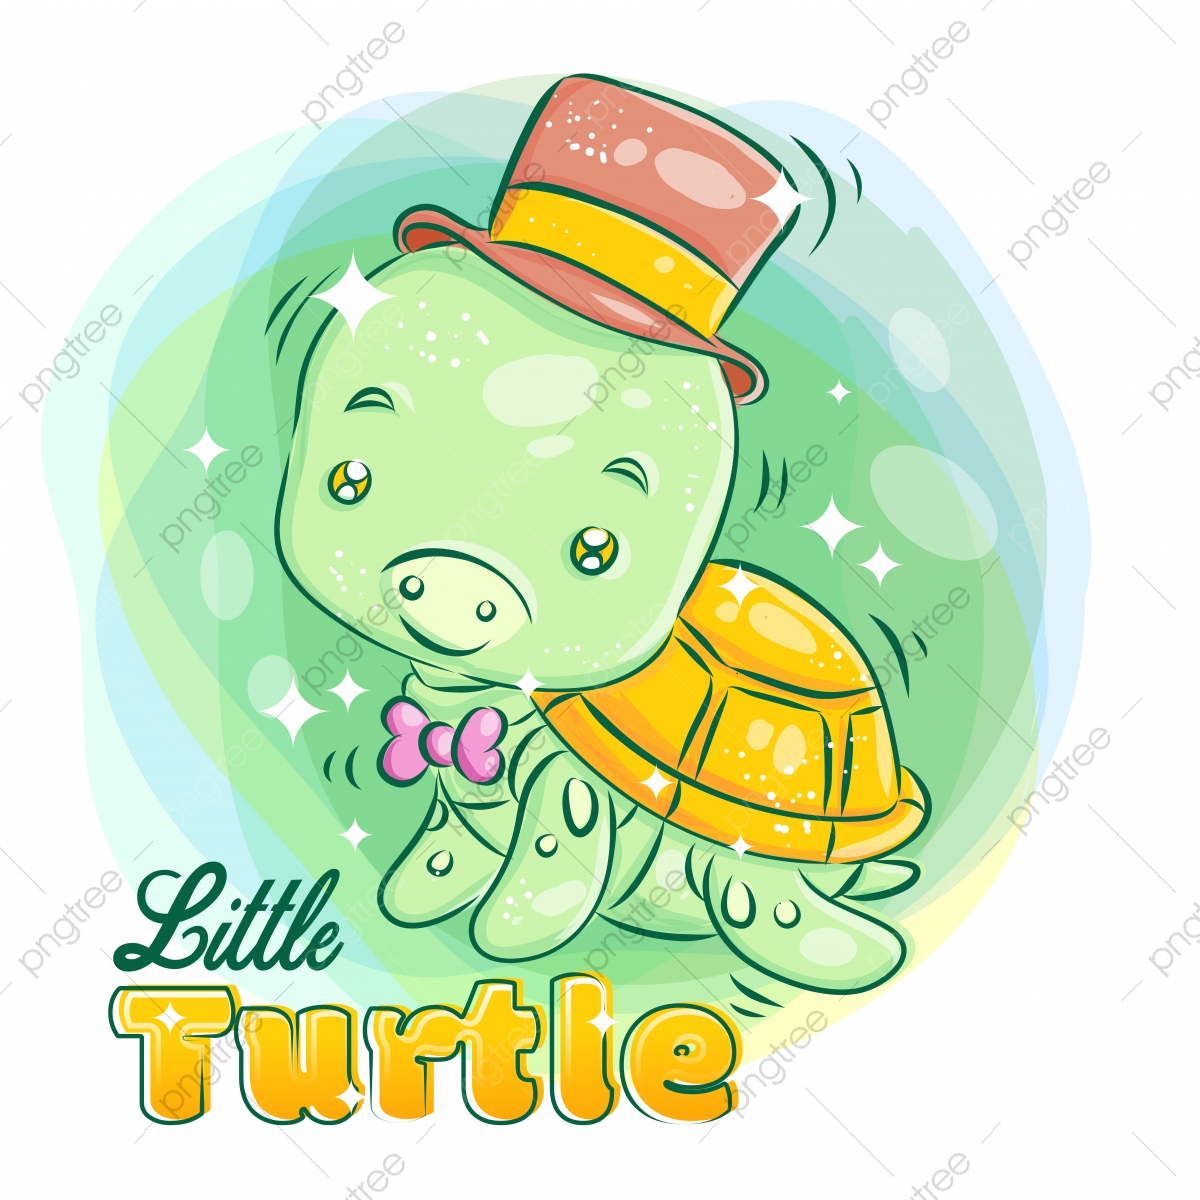 Cute Little Turtle Wear A Hat And Ribbon With Smiling Face